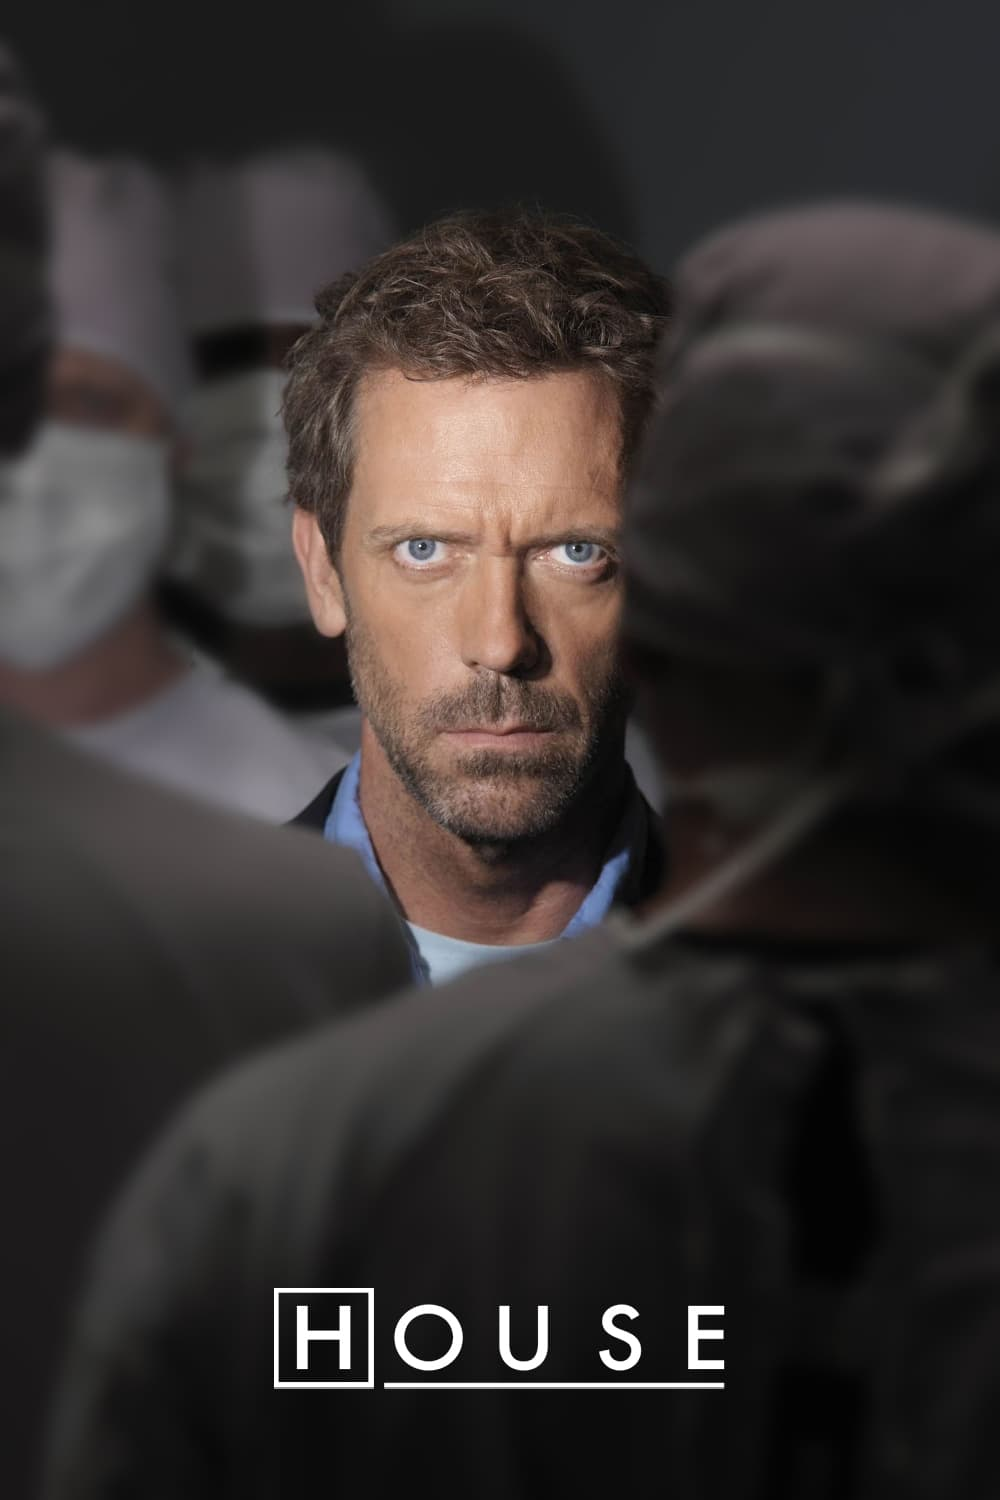 Image Dr. House - Medical Division